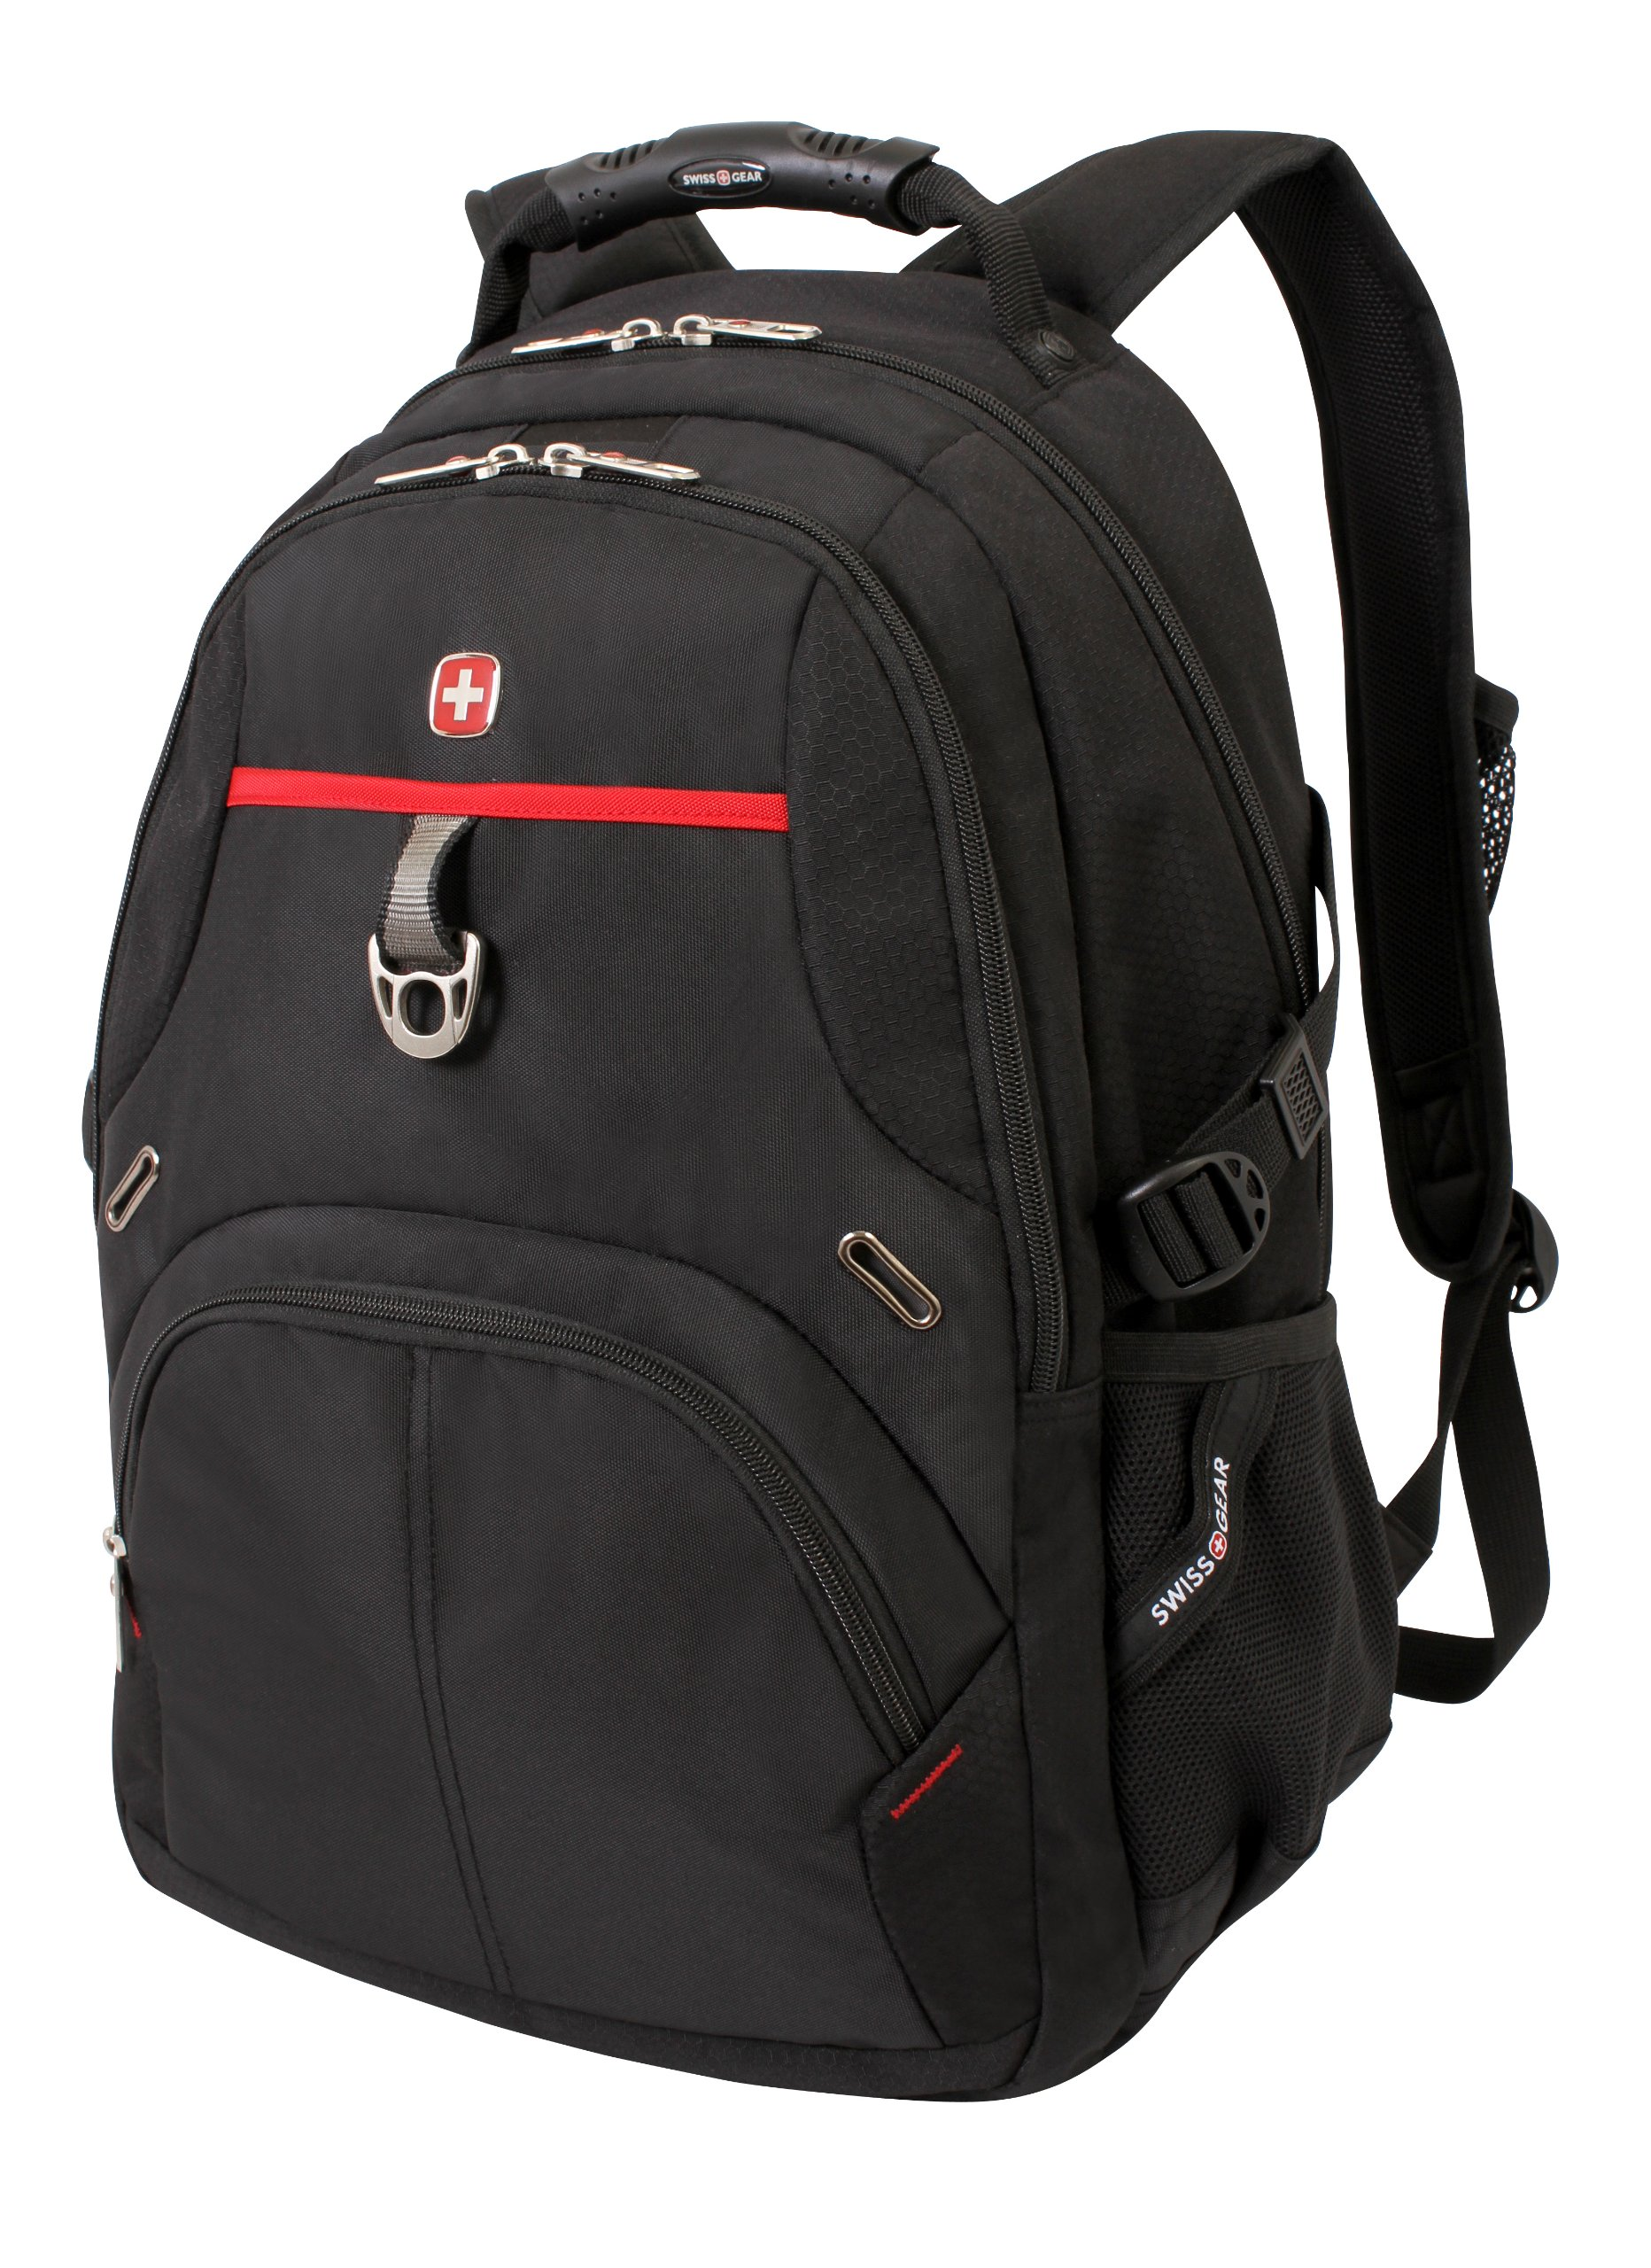 Swiss Gear SA3183 Black with Red Laptop Backpack - Fits Most 15 Inch Laptops and Tablets by Swiss Gear